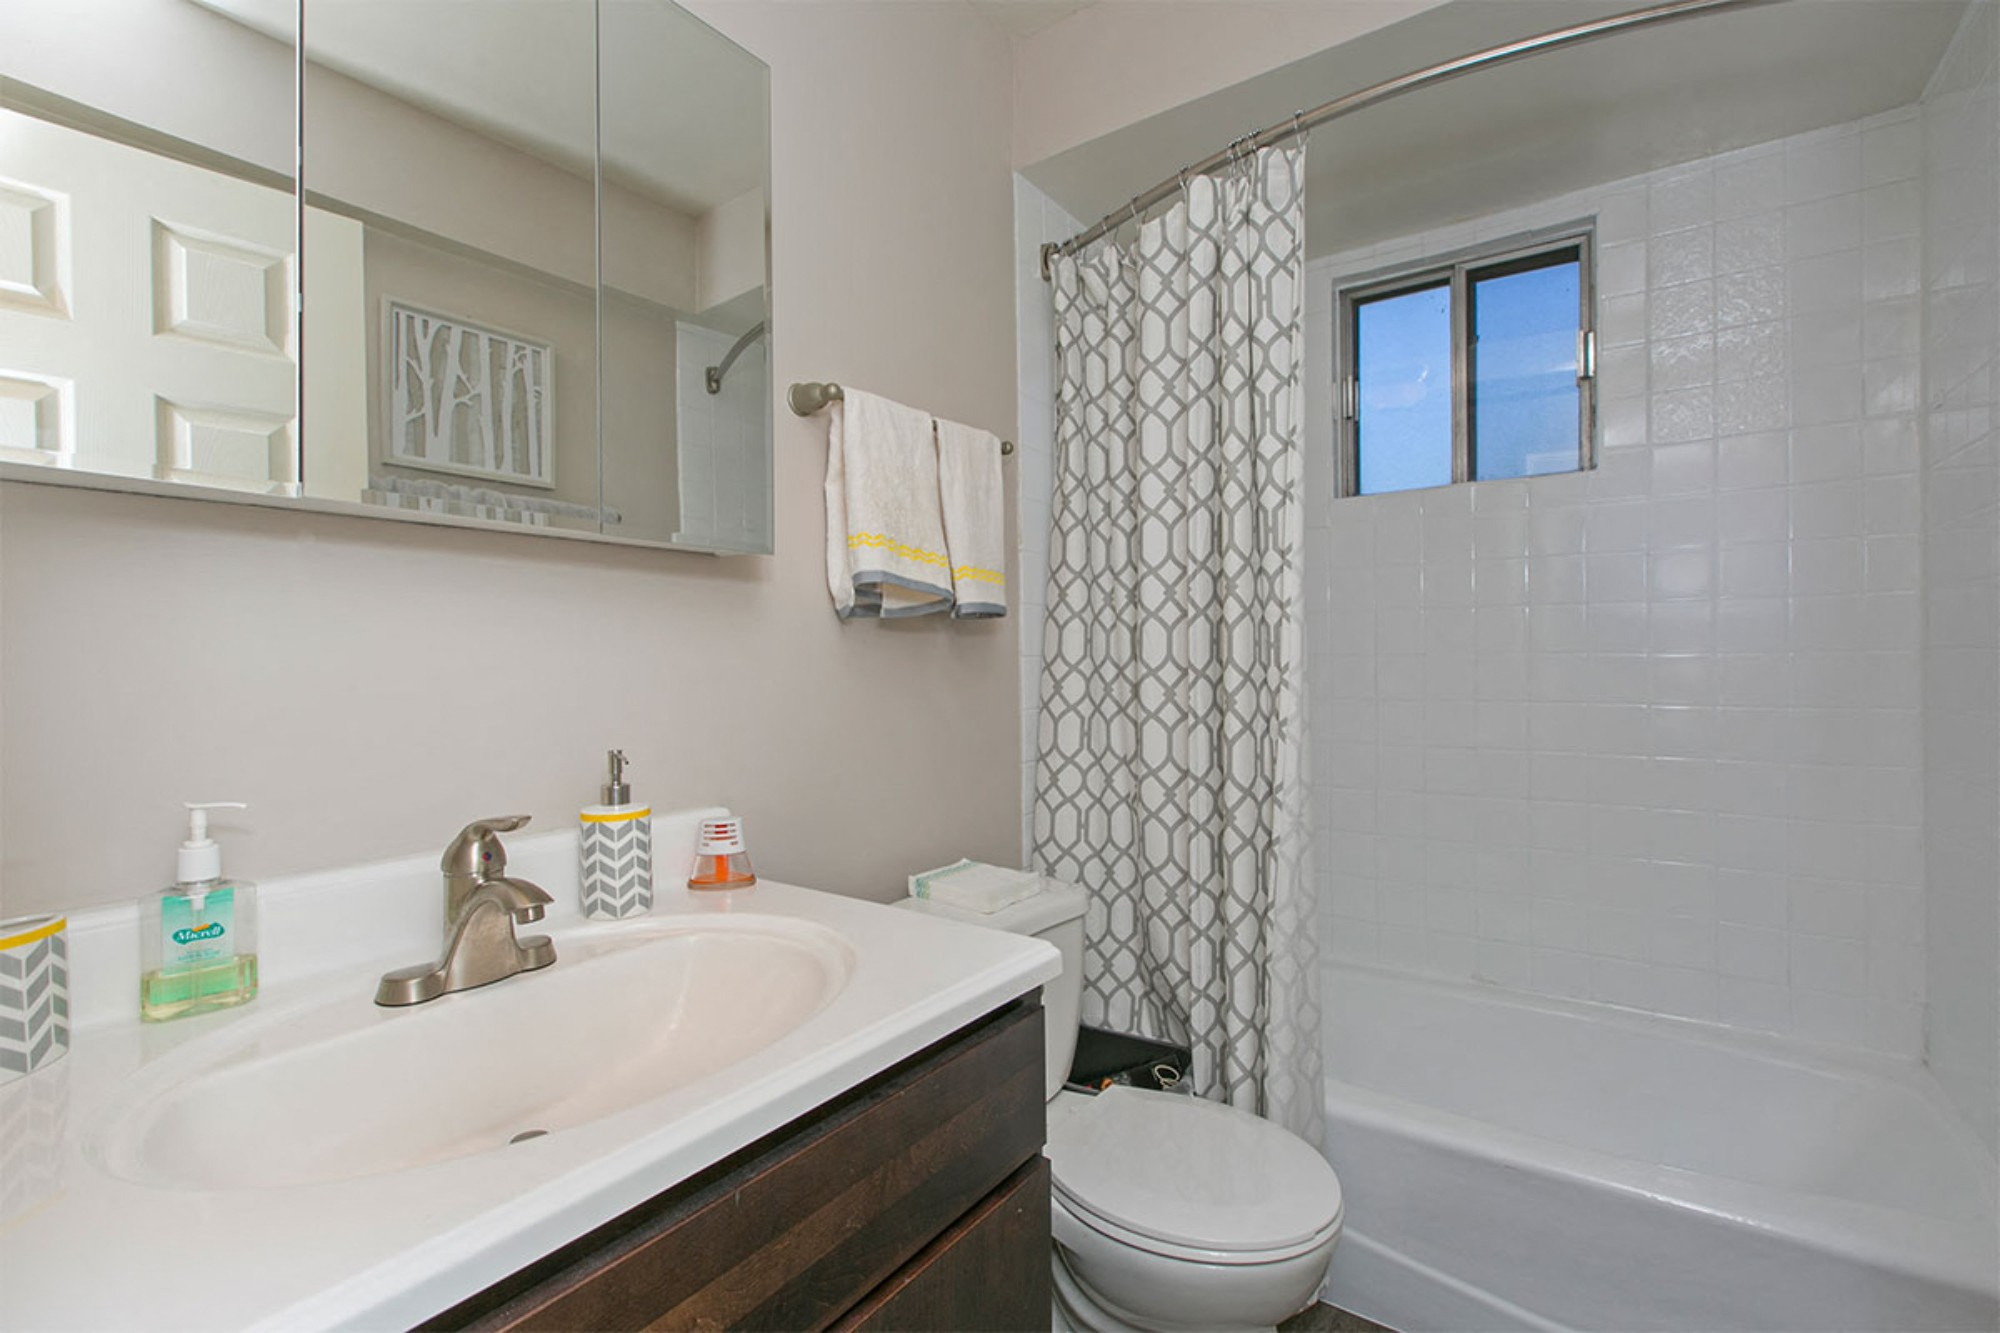 Bathroom Accessories at Westmont Village, Illinois, 60559